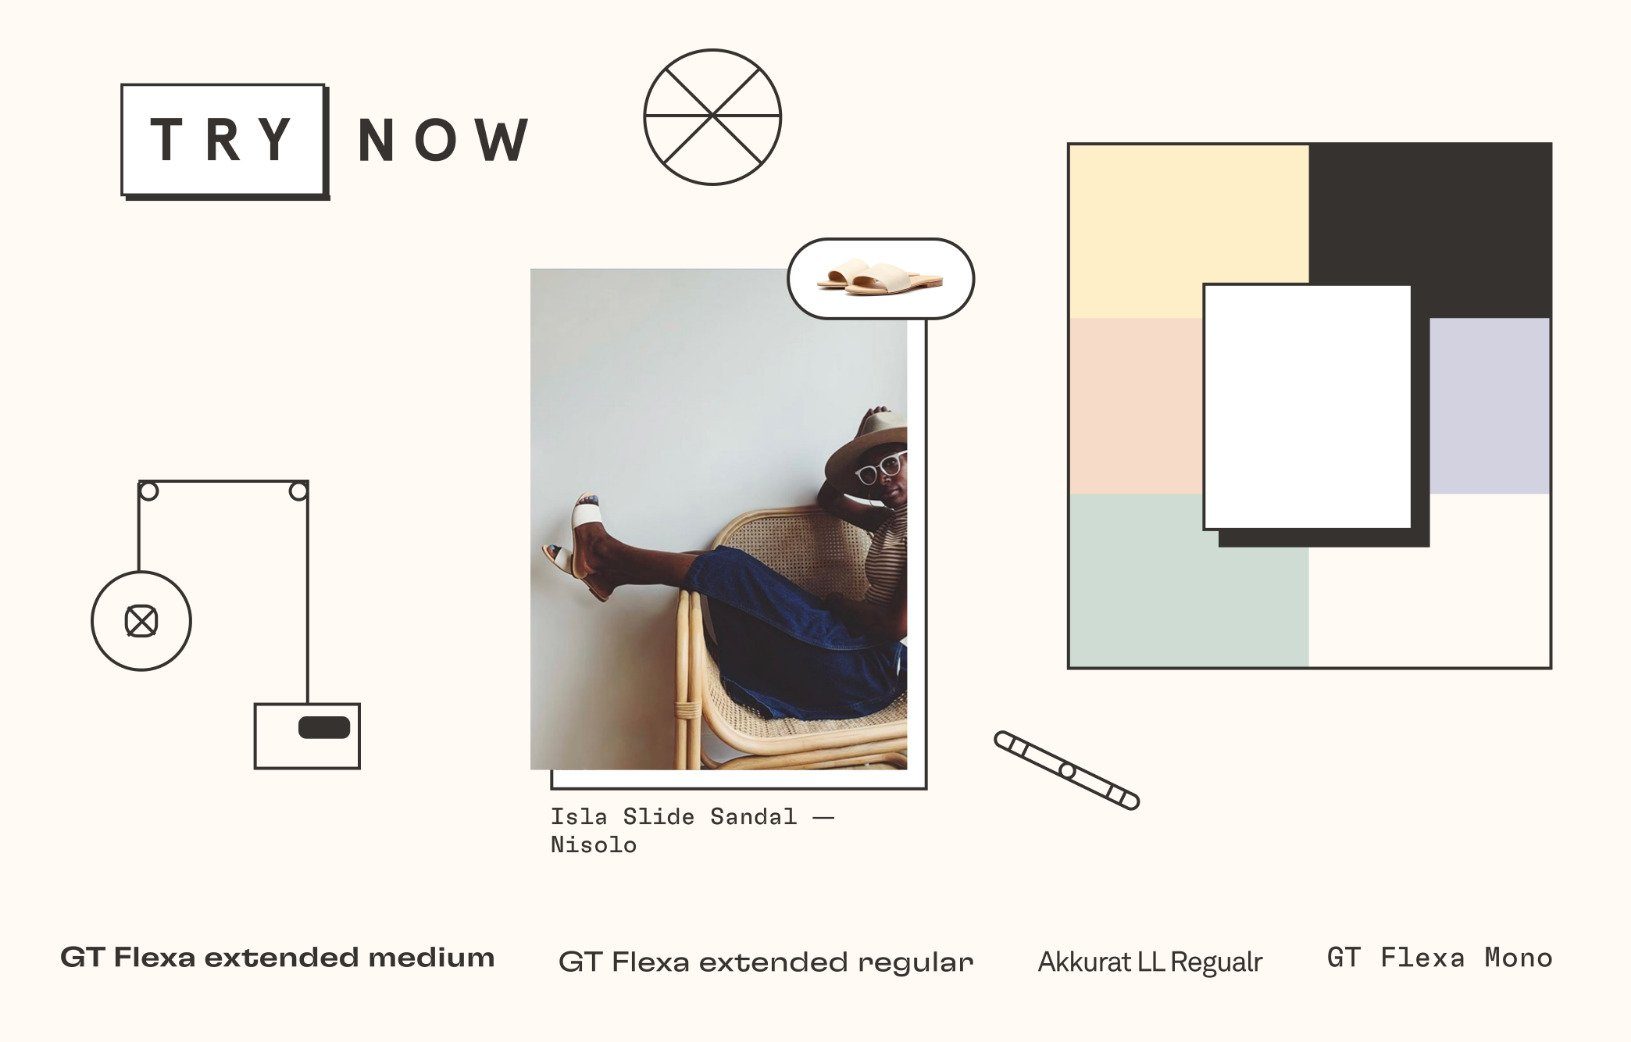 Try Now mood board